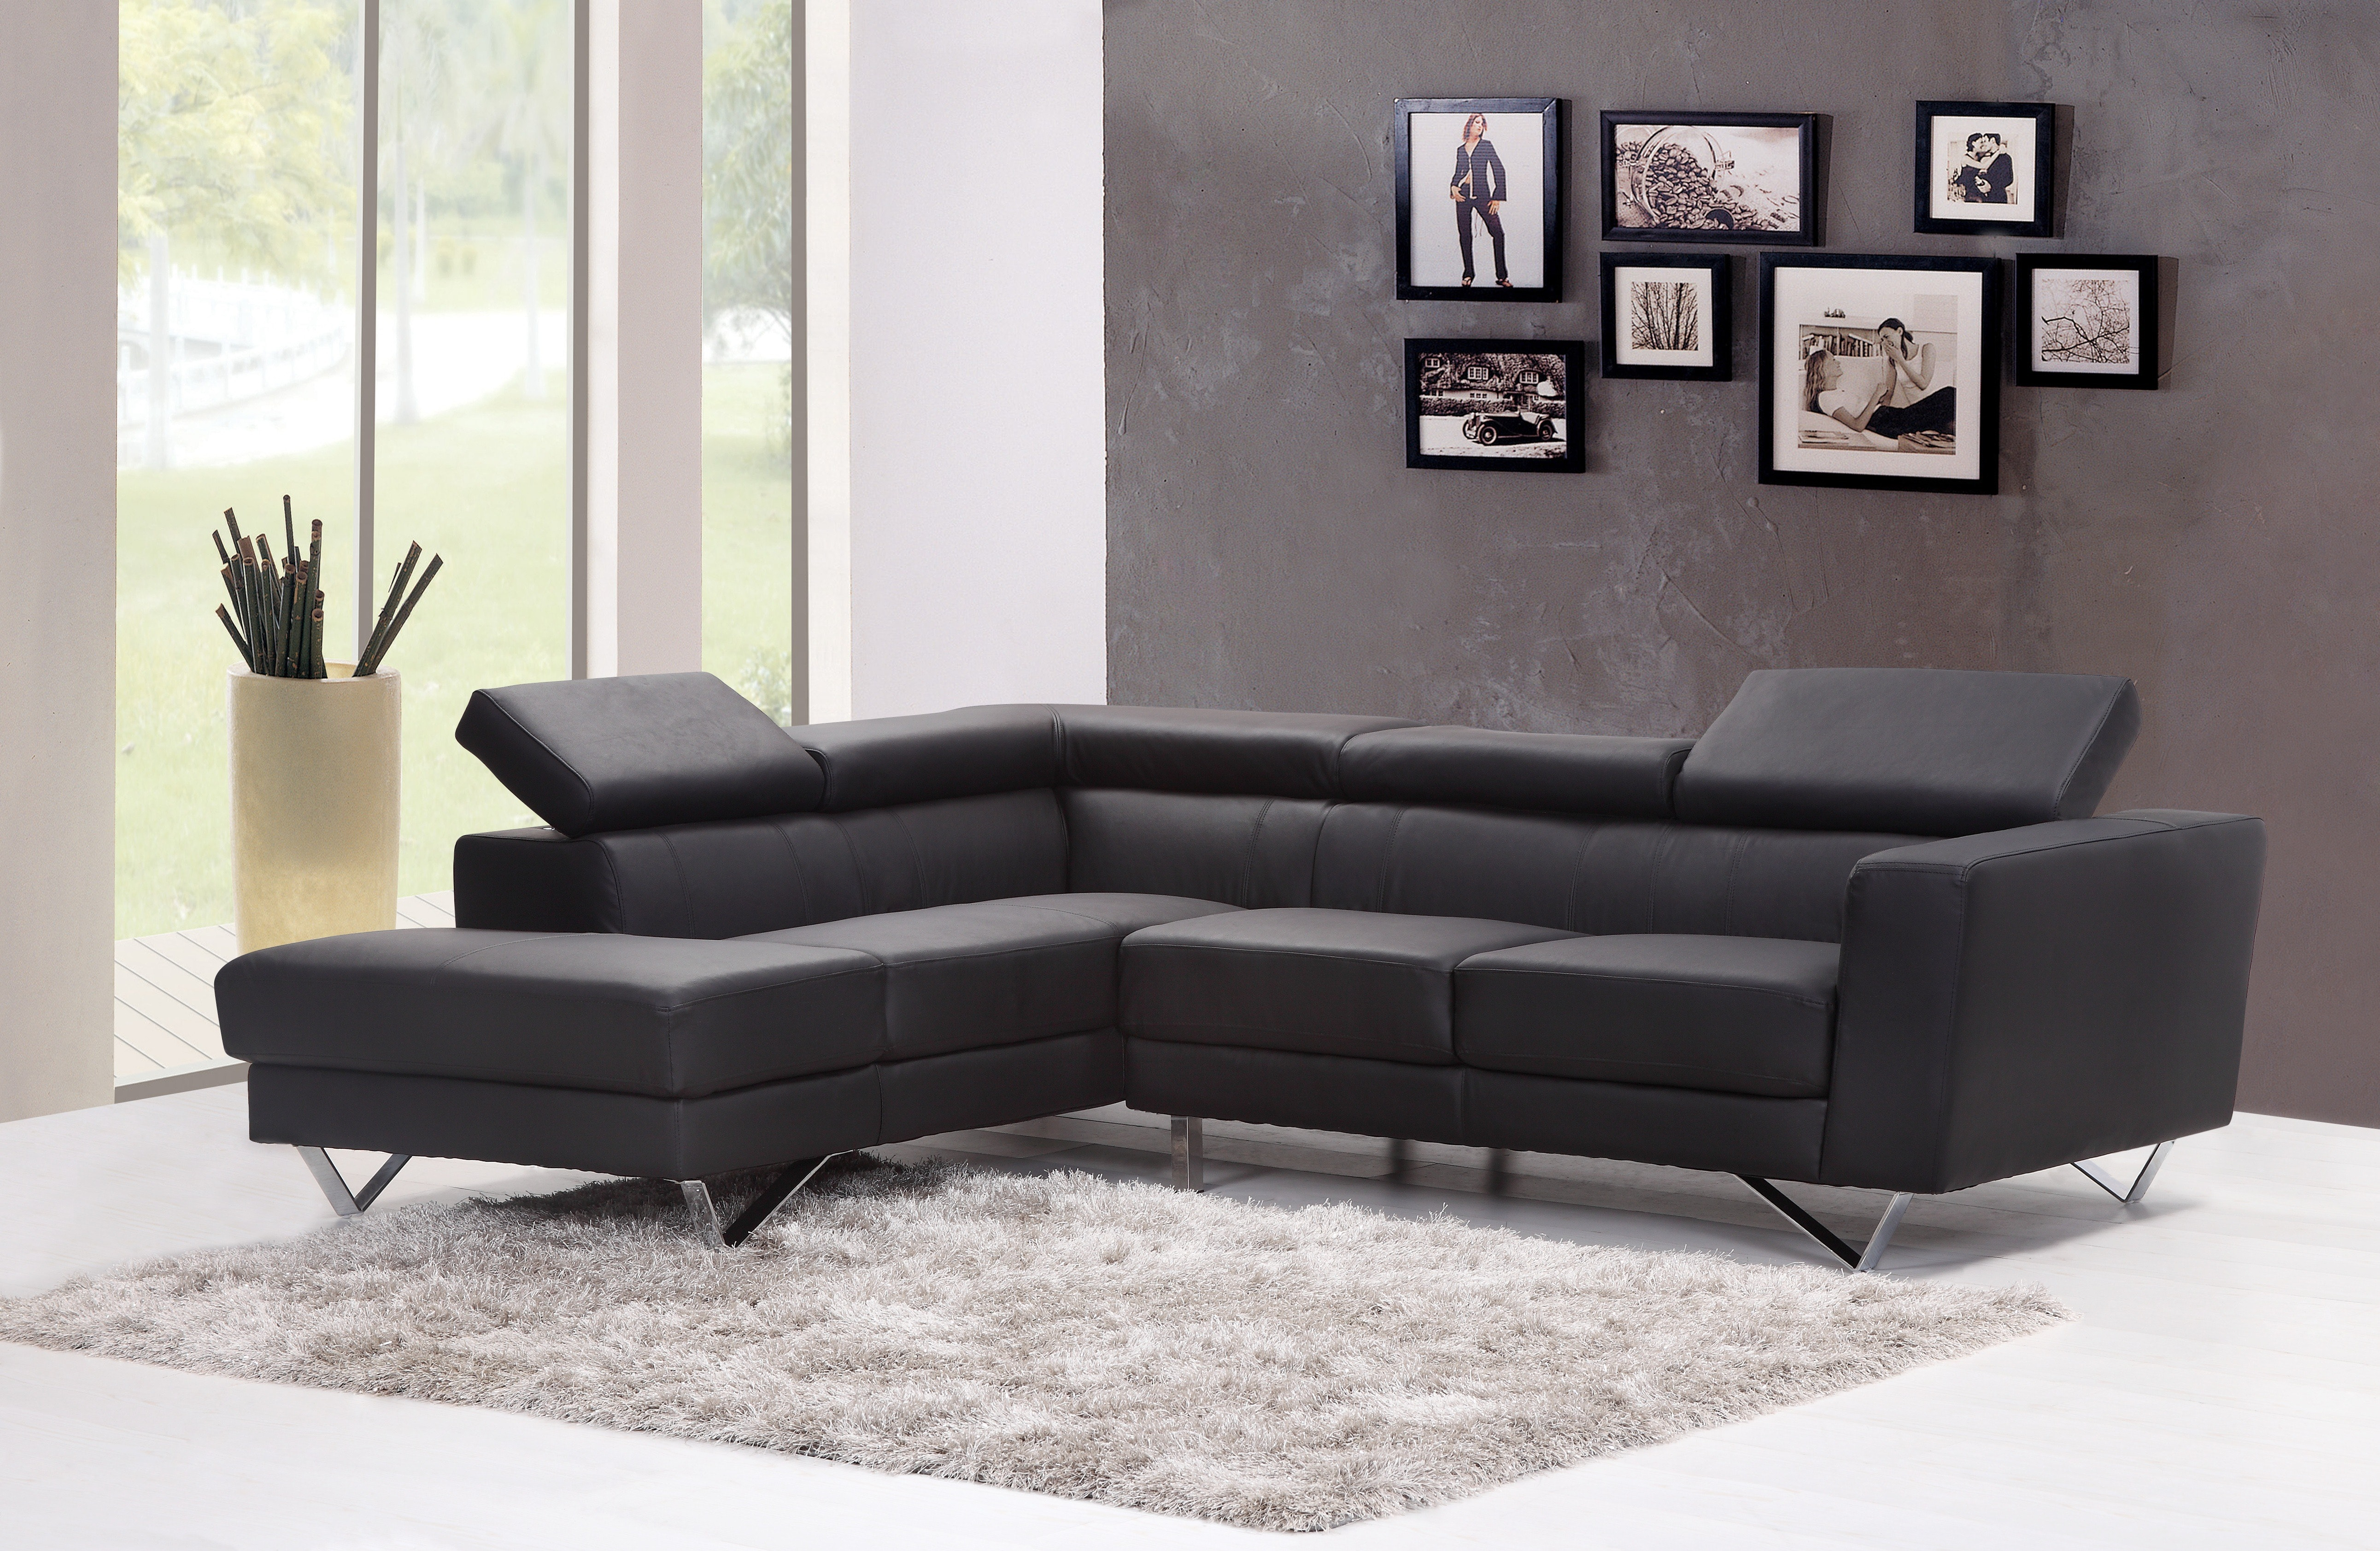 Black Fabric Sectional Sofa Near Glass Window Free Stock Photo